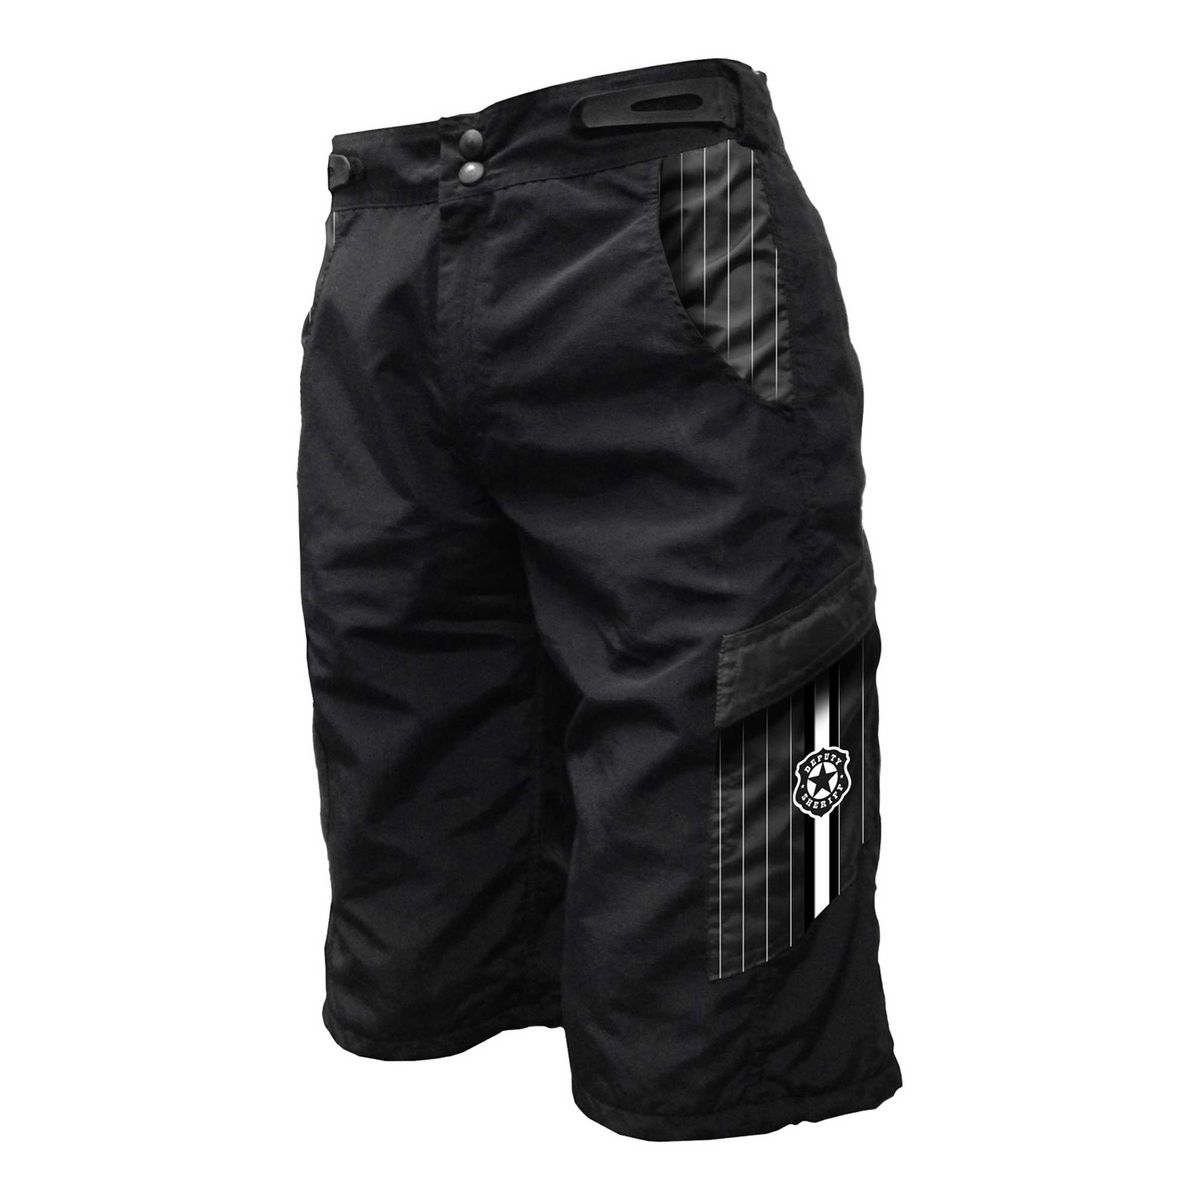 BUSH HUNTER Bikeshorts